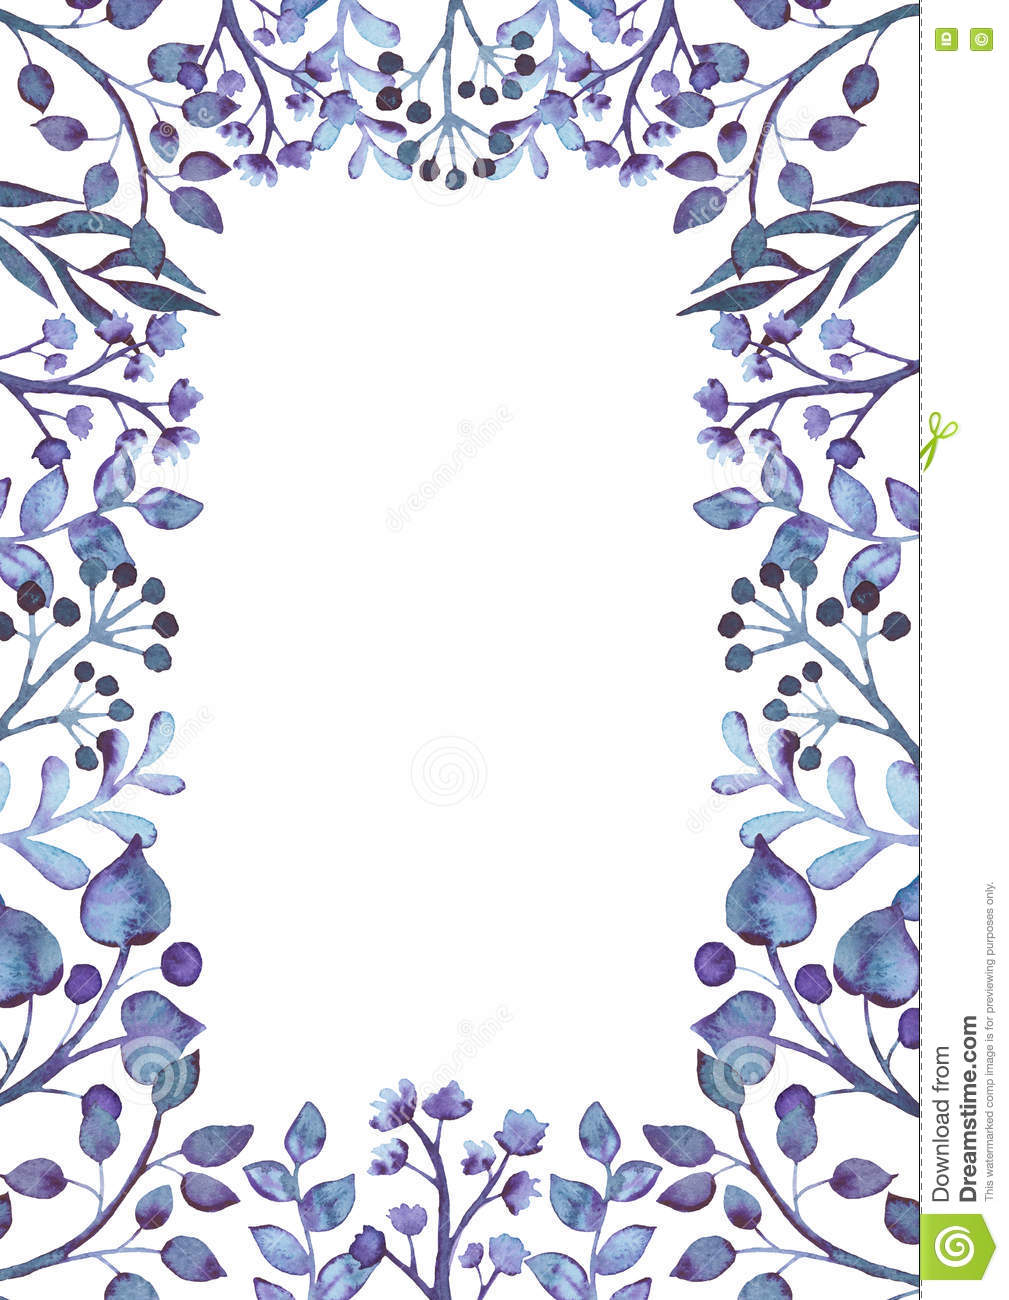 Floral Frame With Watercolor Deep Violet Branches